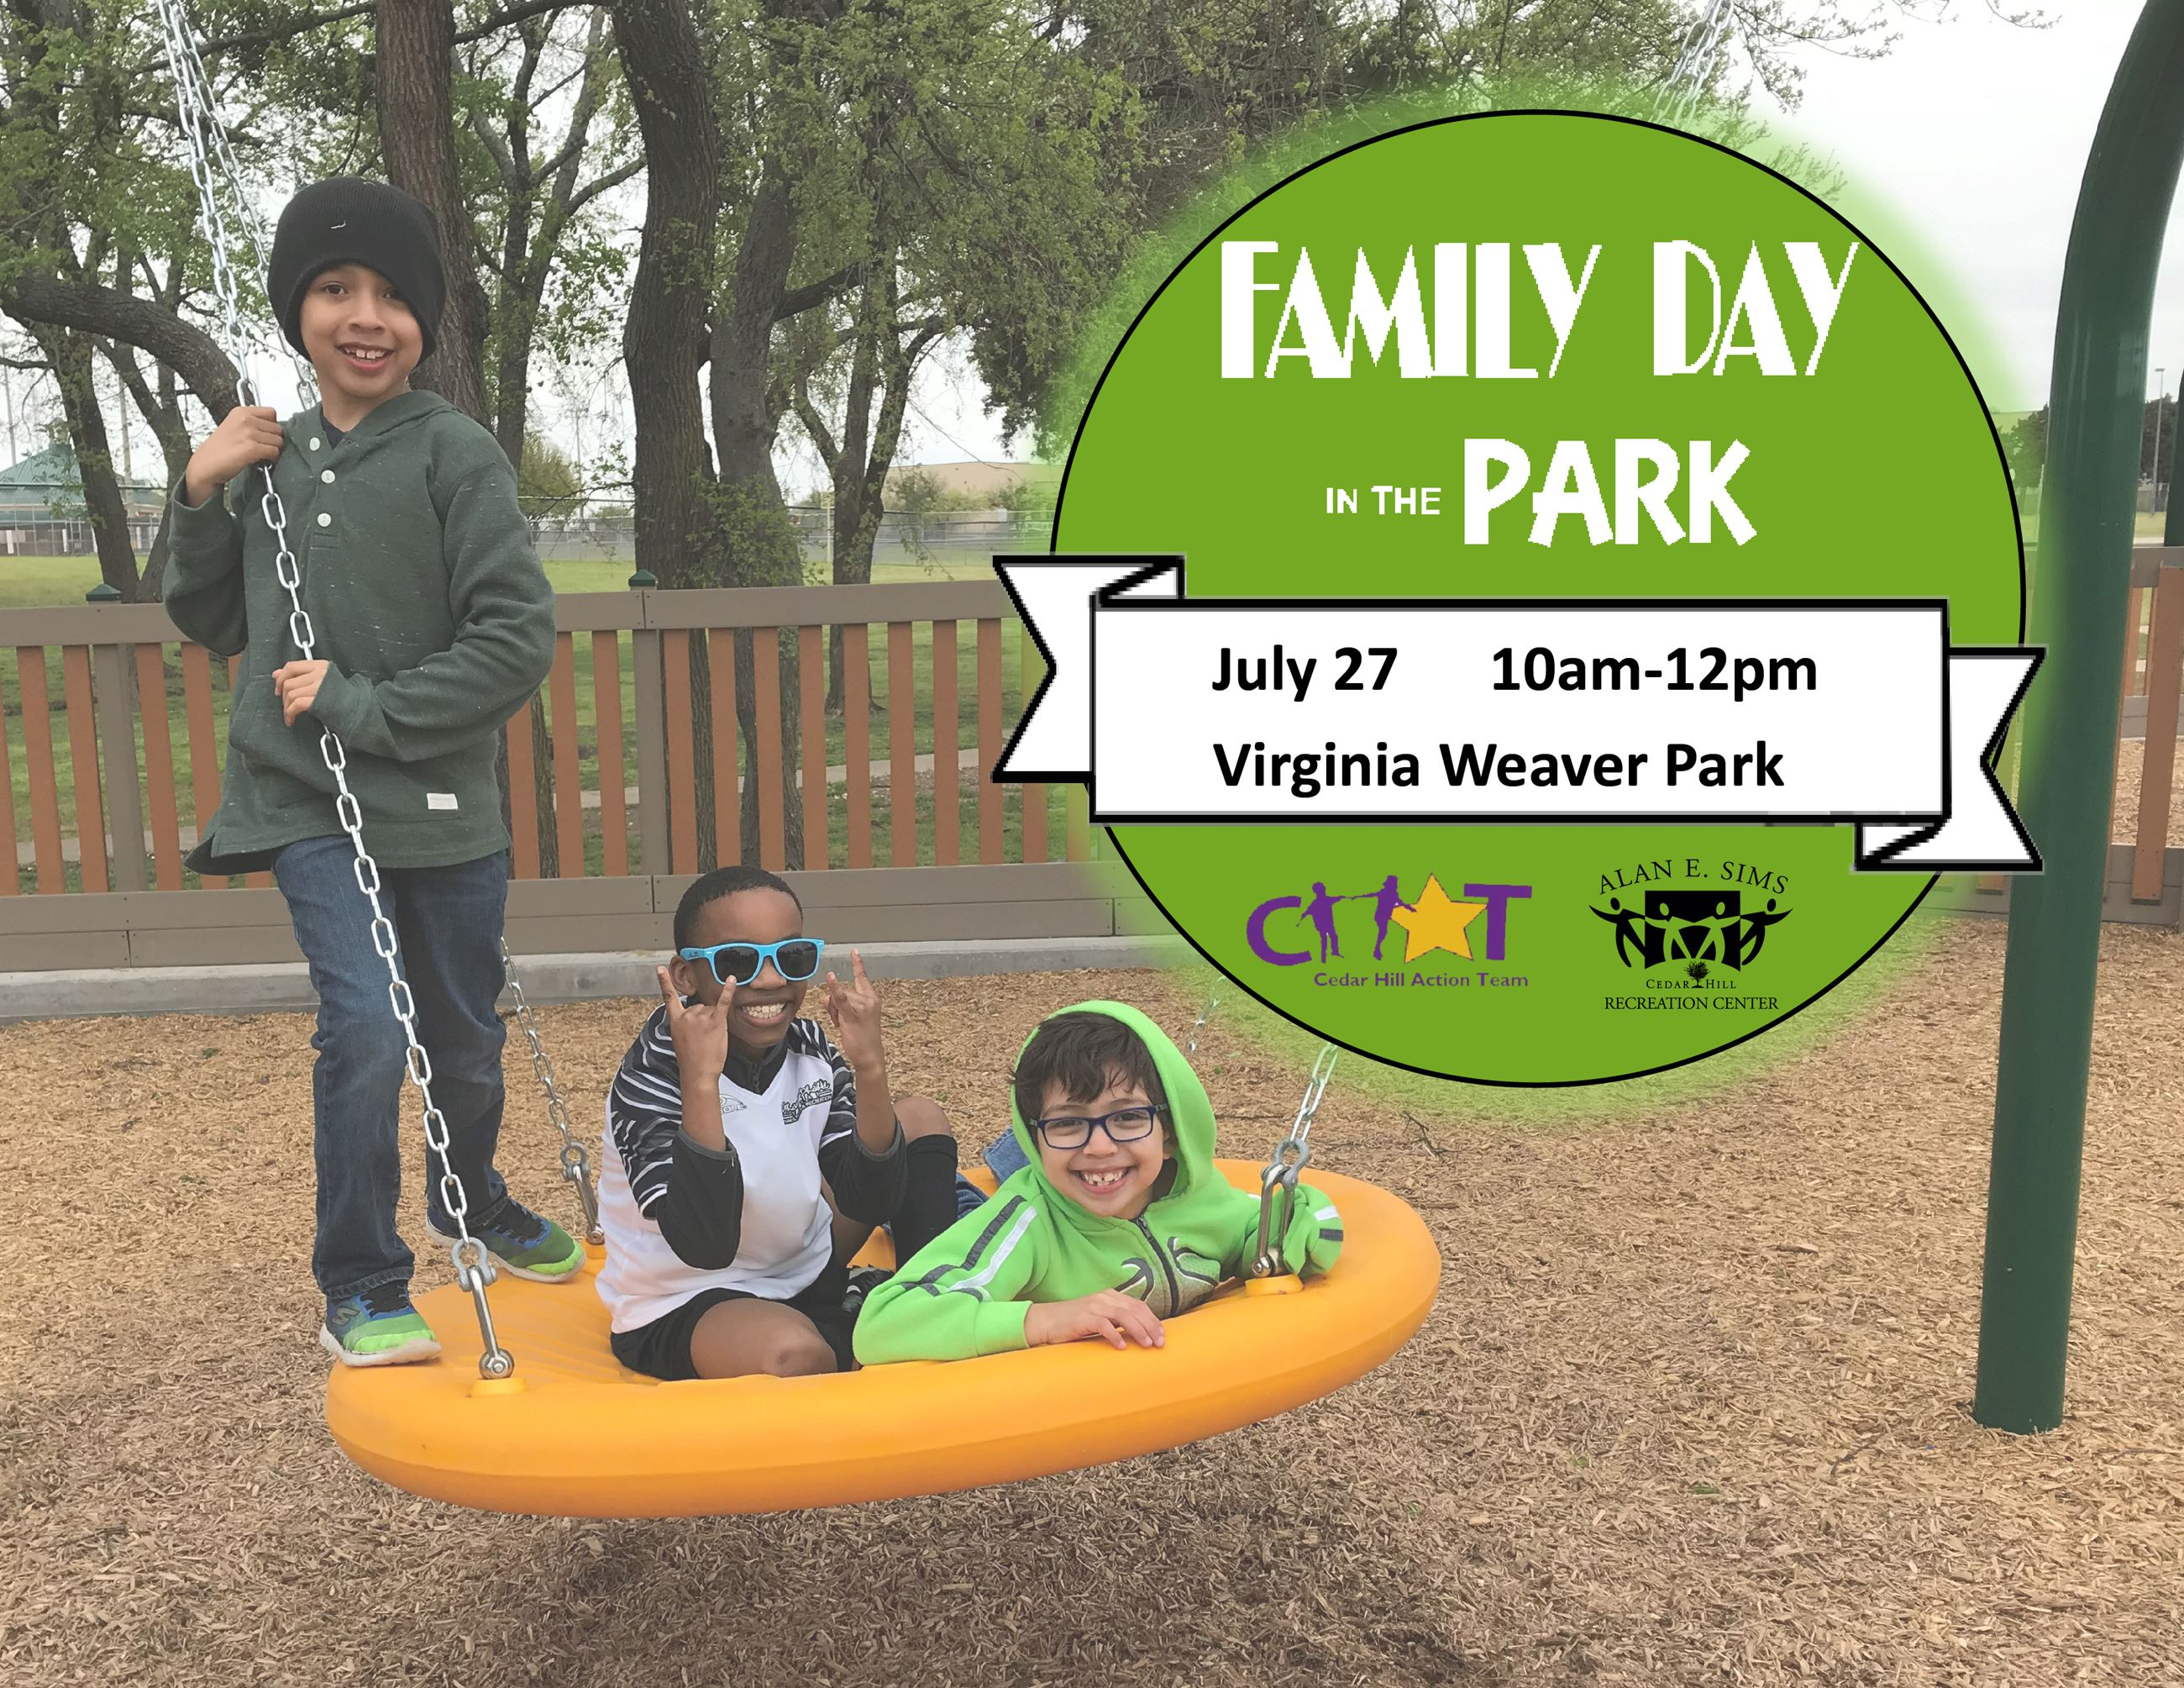 2019 family day in the park flyer